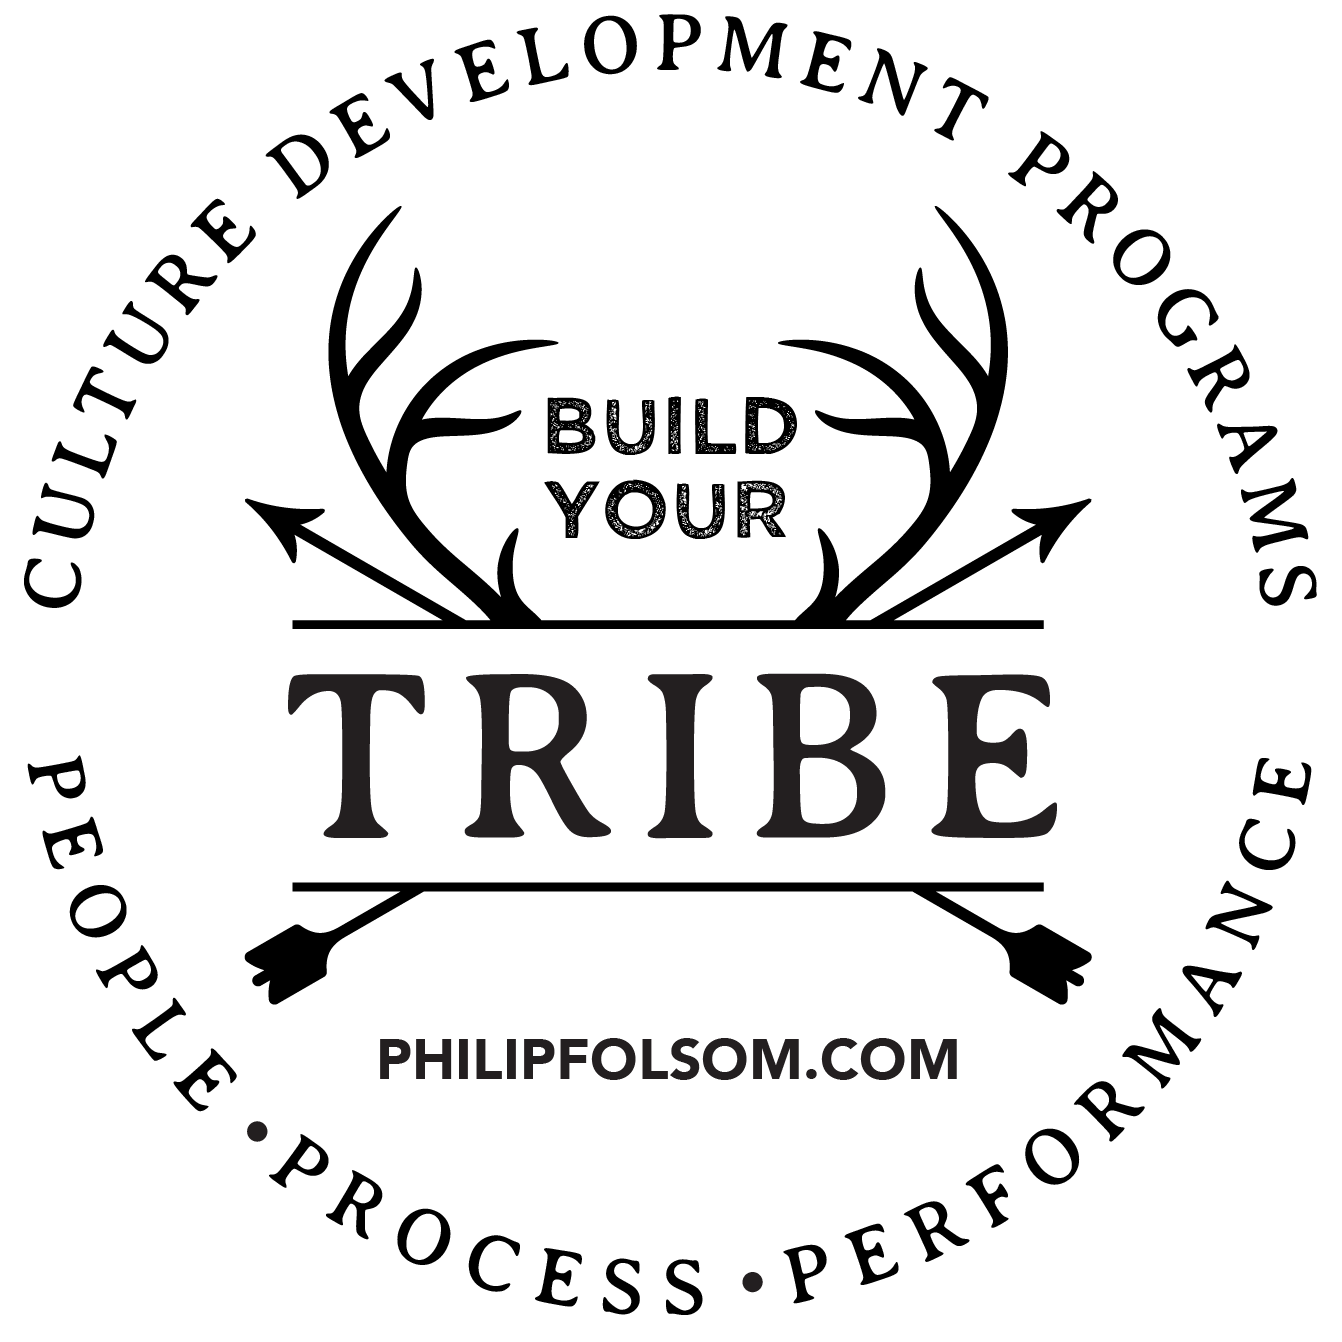 Transform your Team Into a Tribe - At the center of Philips coaching and culture development work is his Tribe program, bringing the enormous benefits of the world's ancient tribe systems to modern day corporate teams such as Sony, Microsoft, Dreamworks, Apple and RedBull. The Tribe Program is the ultimate solution to stress management, collaboration, employee retention and engagement as well as conflict resolution and creating cultures of accountability. For sustainable health and high performance in our organizations we must transform our teams into tribes!